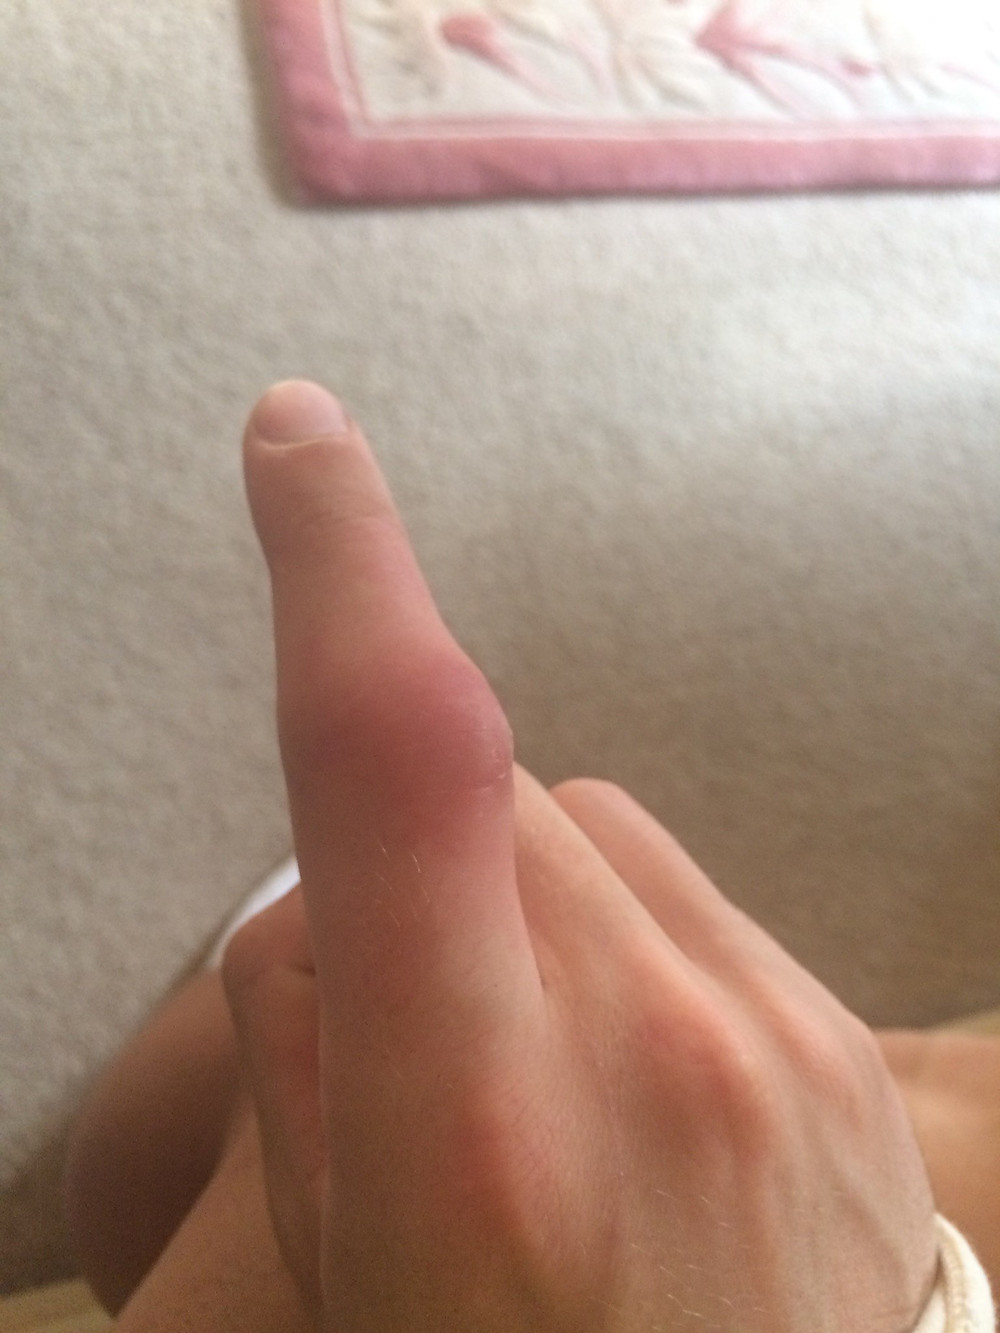 My swollen disfigured finger